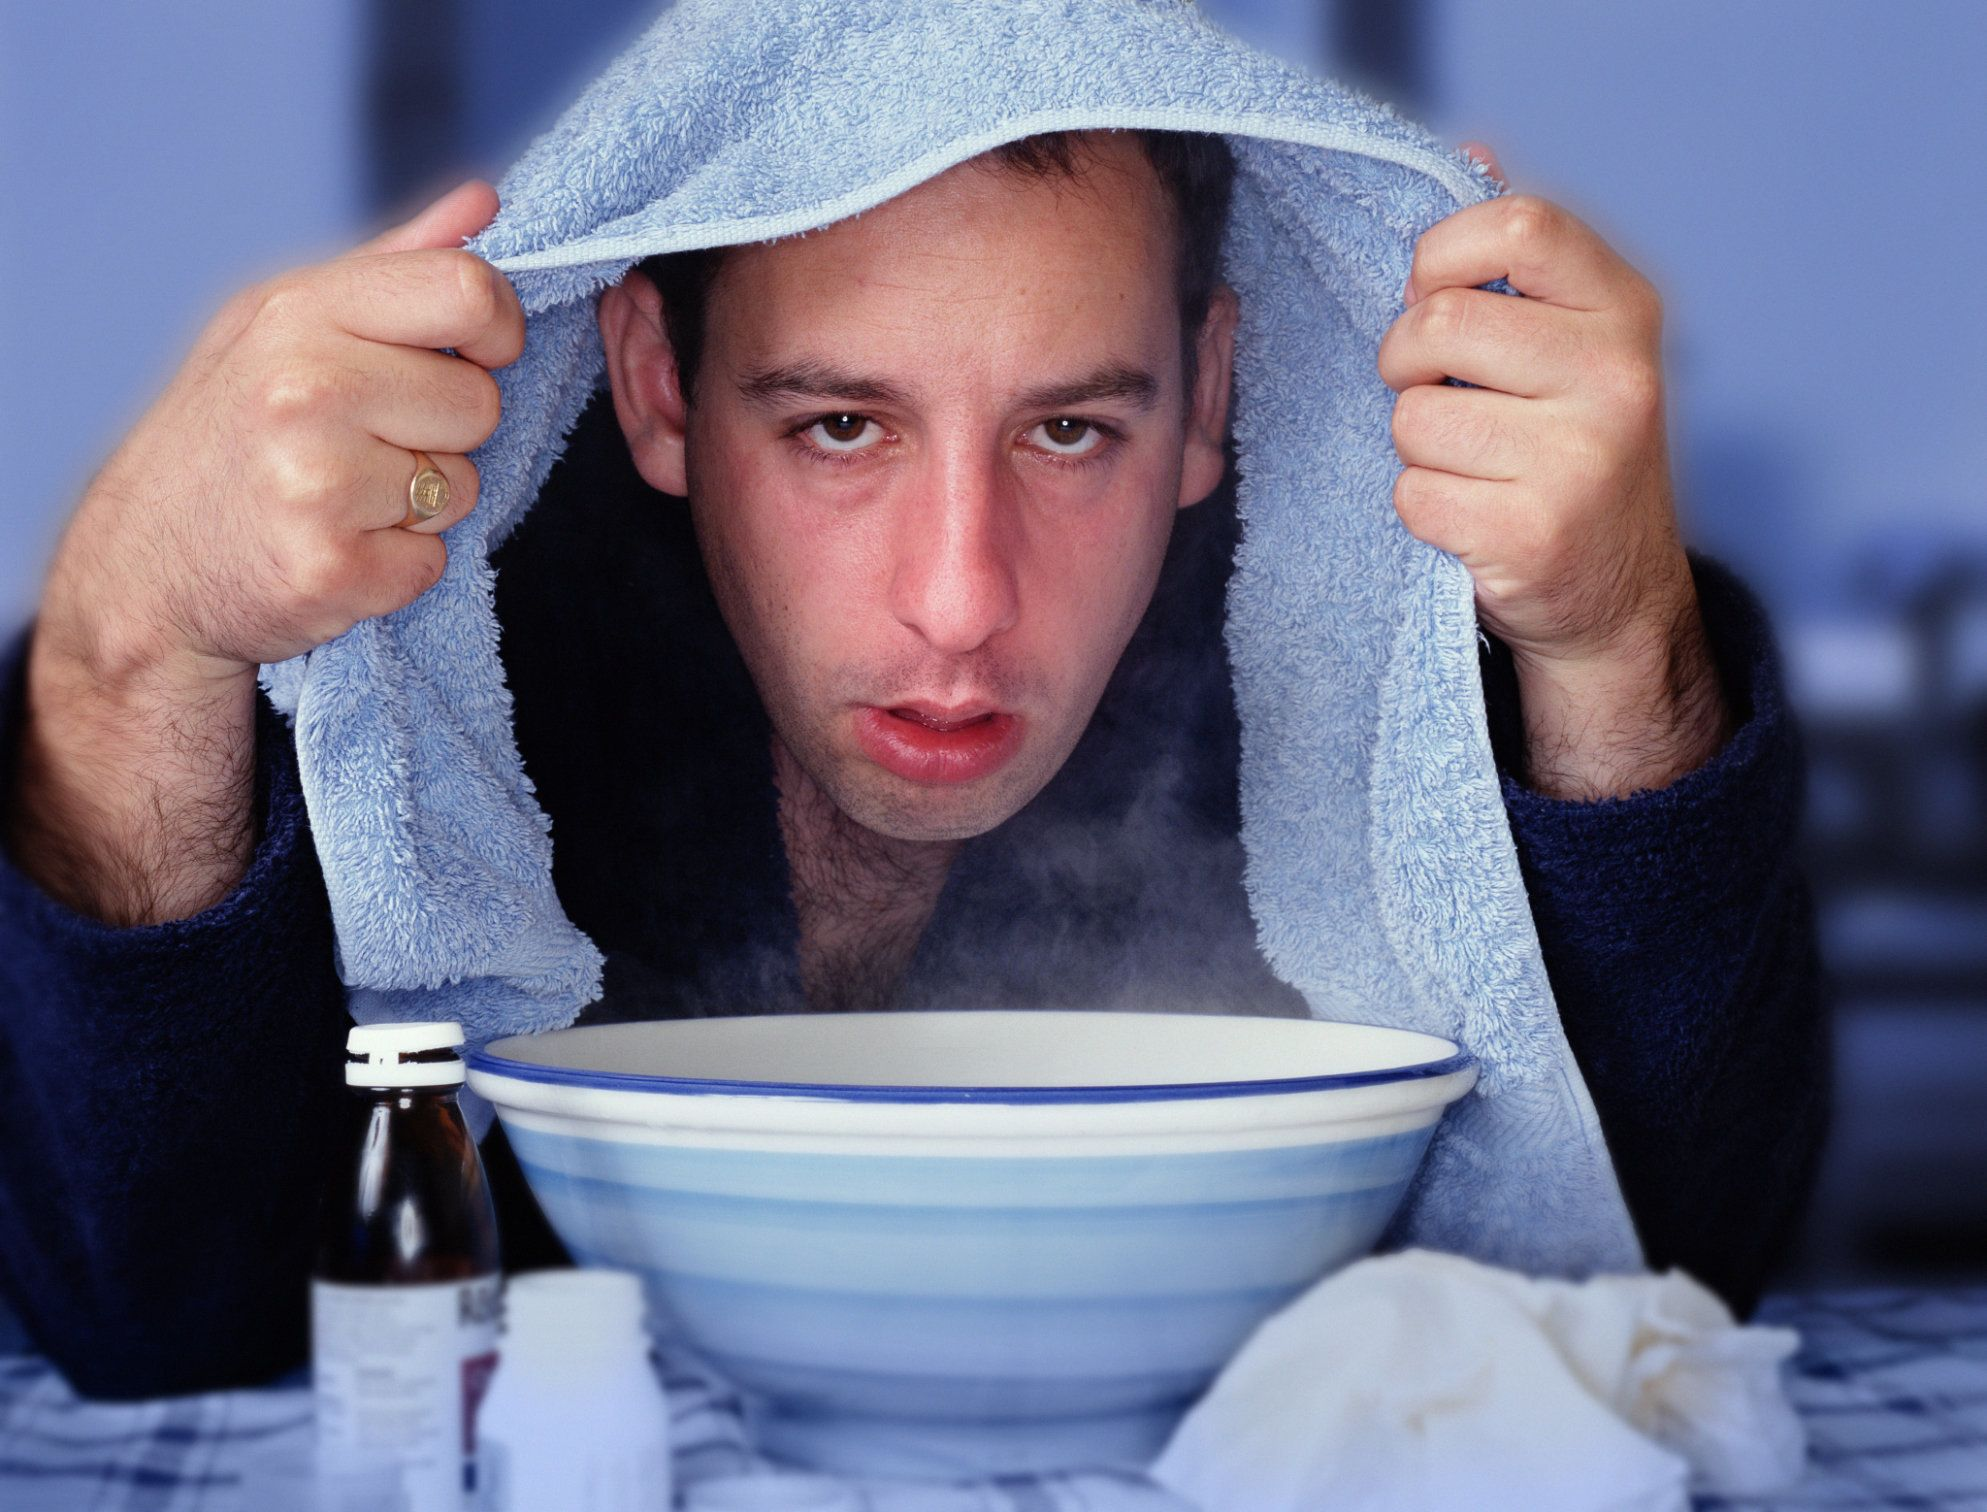 Man with towel over head, leaning over bowl of steam (Enhancement)